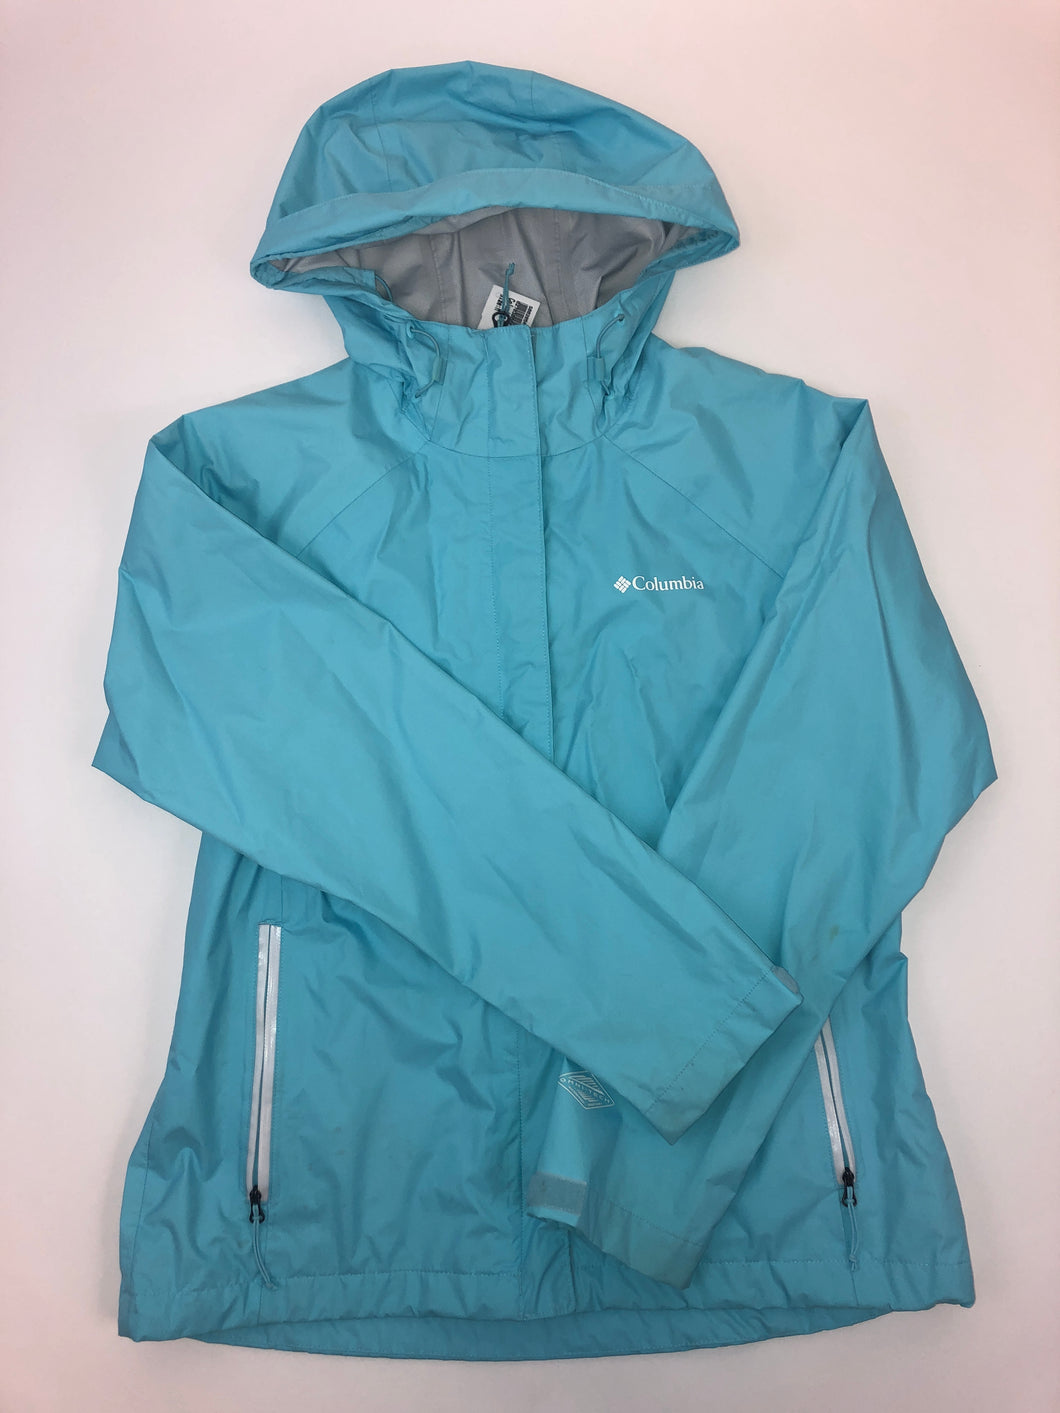 Columbia Womens Outerwear Size Medium